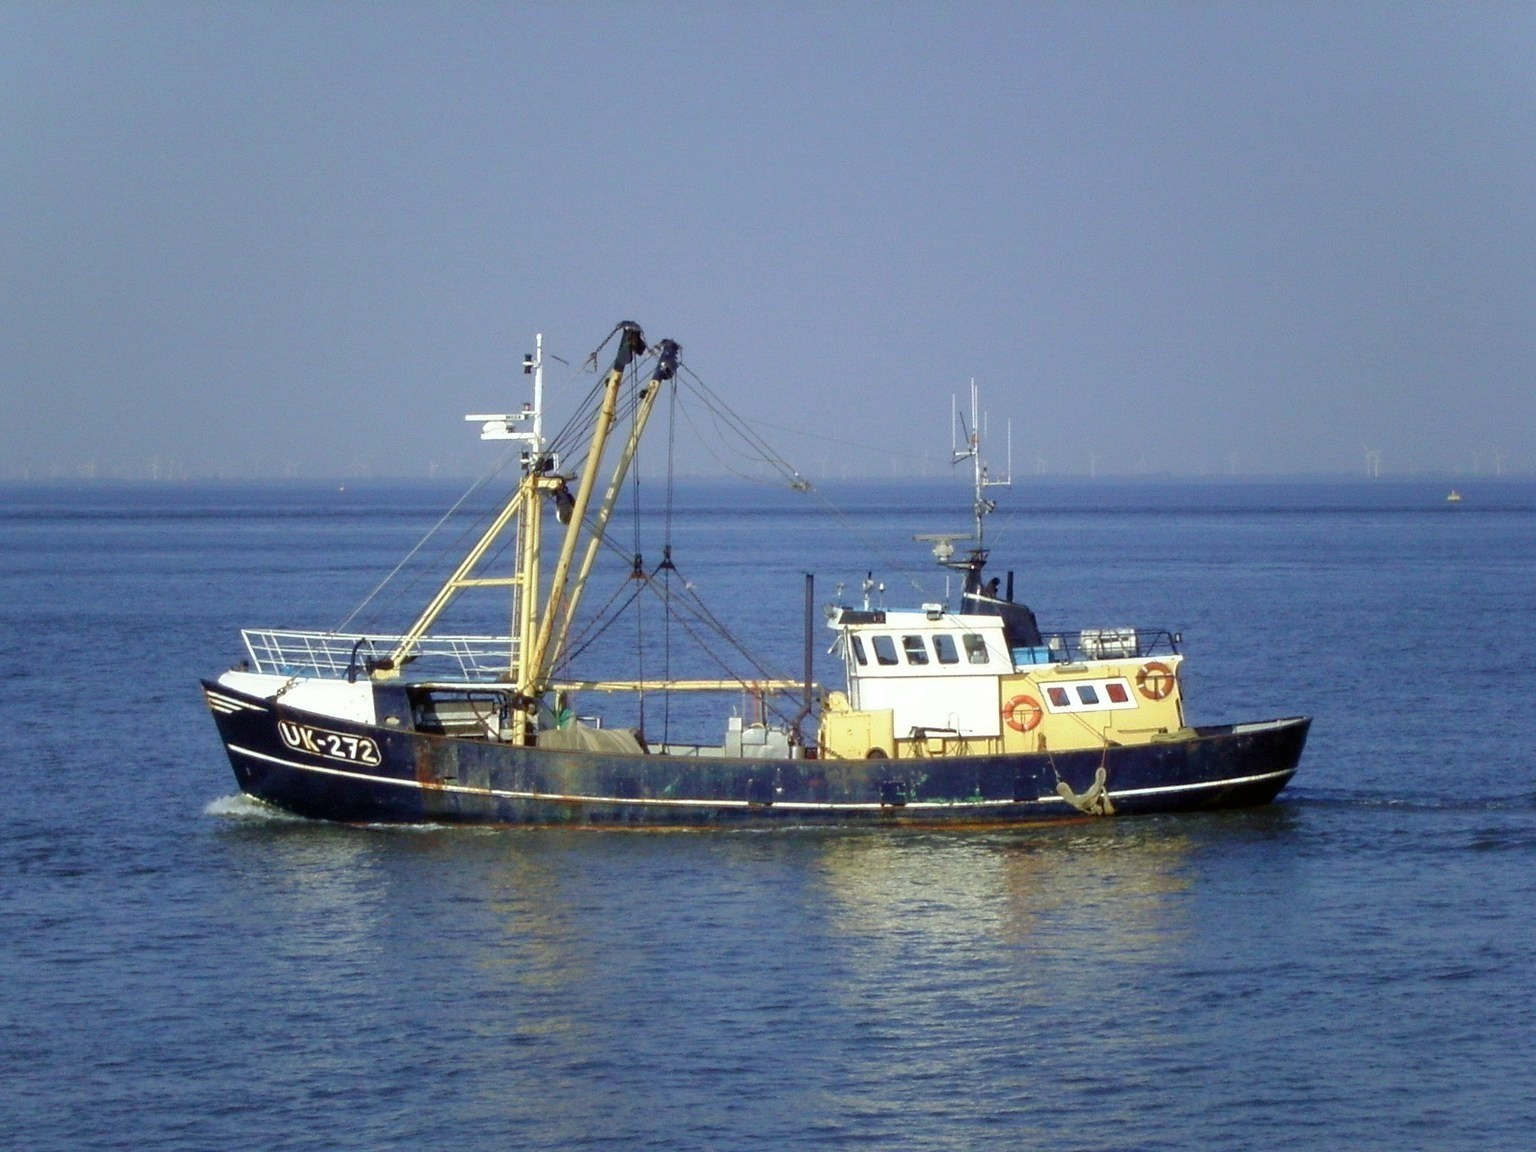 Fishing vessel pictures to pin on pinterest pinsdaddy for How to ship fish